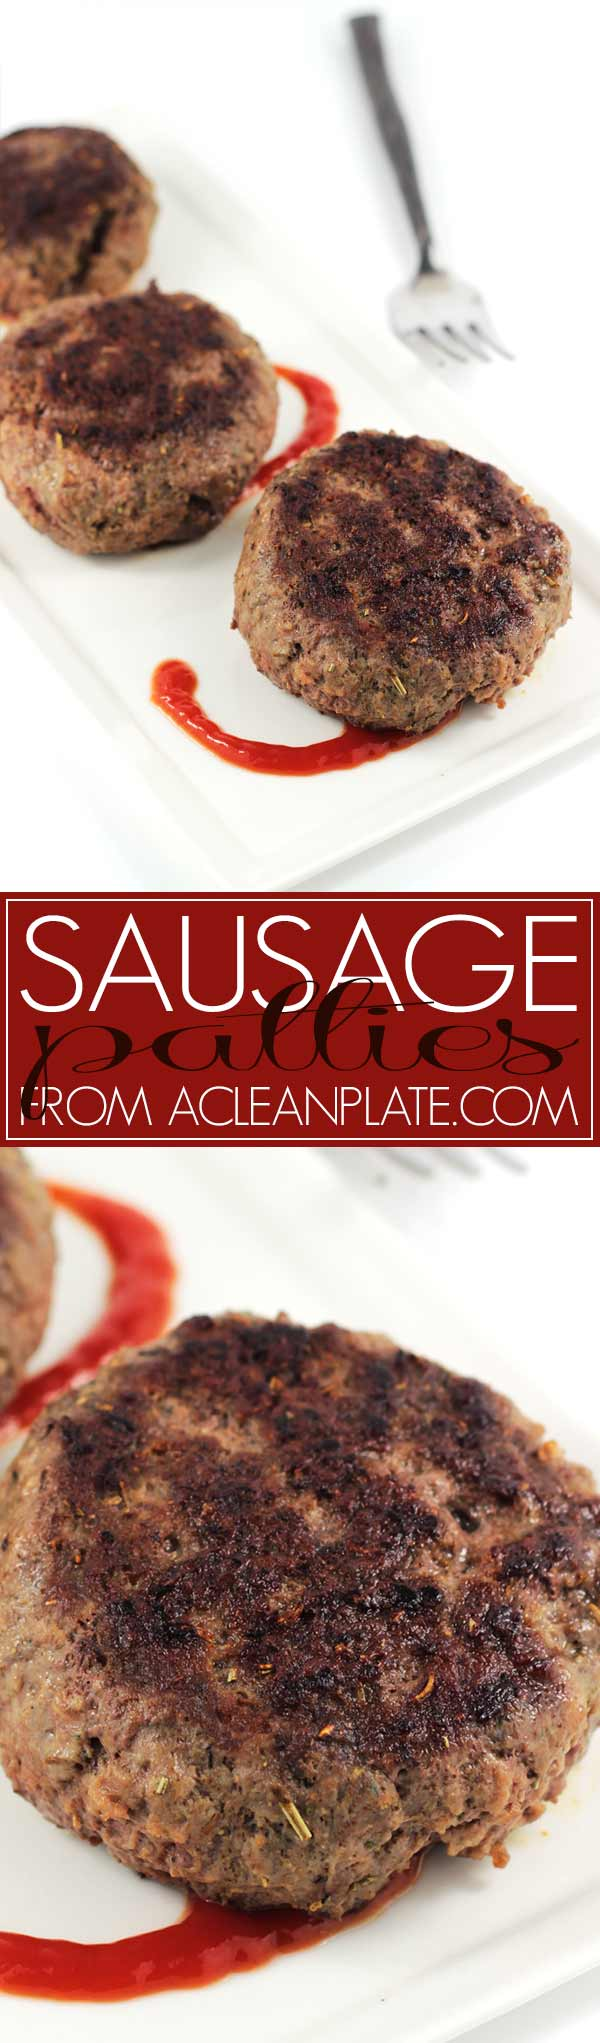 Sausage Patties recipe from acleanplate.com